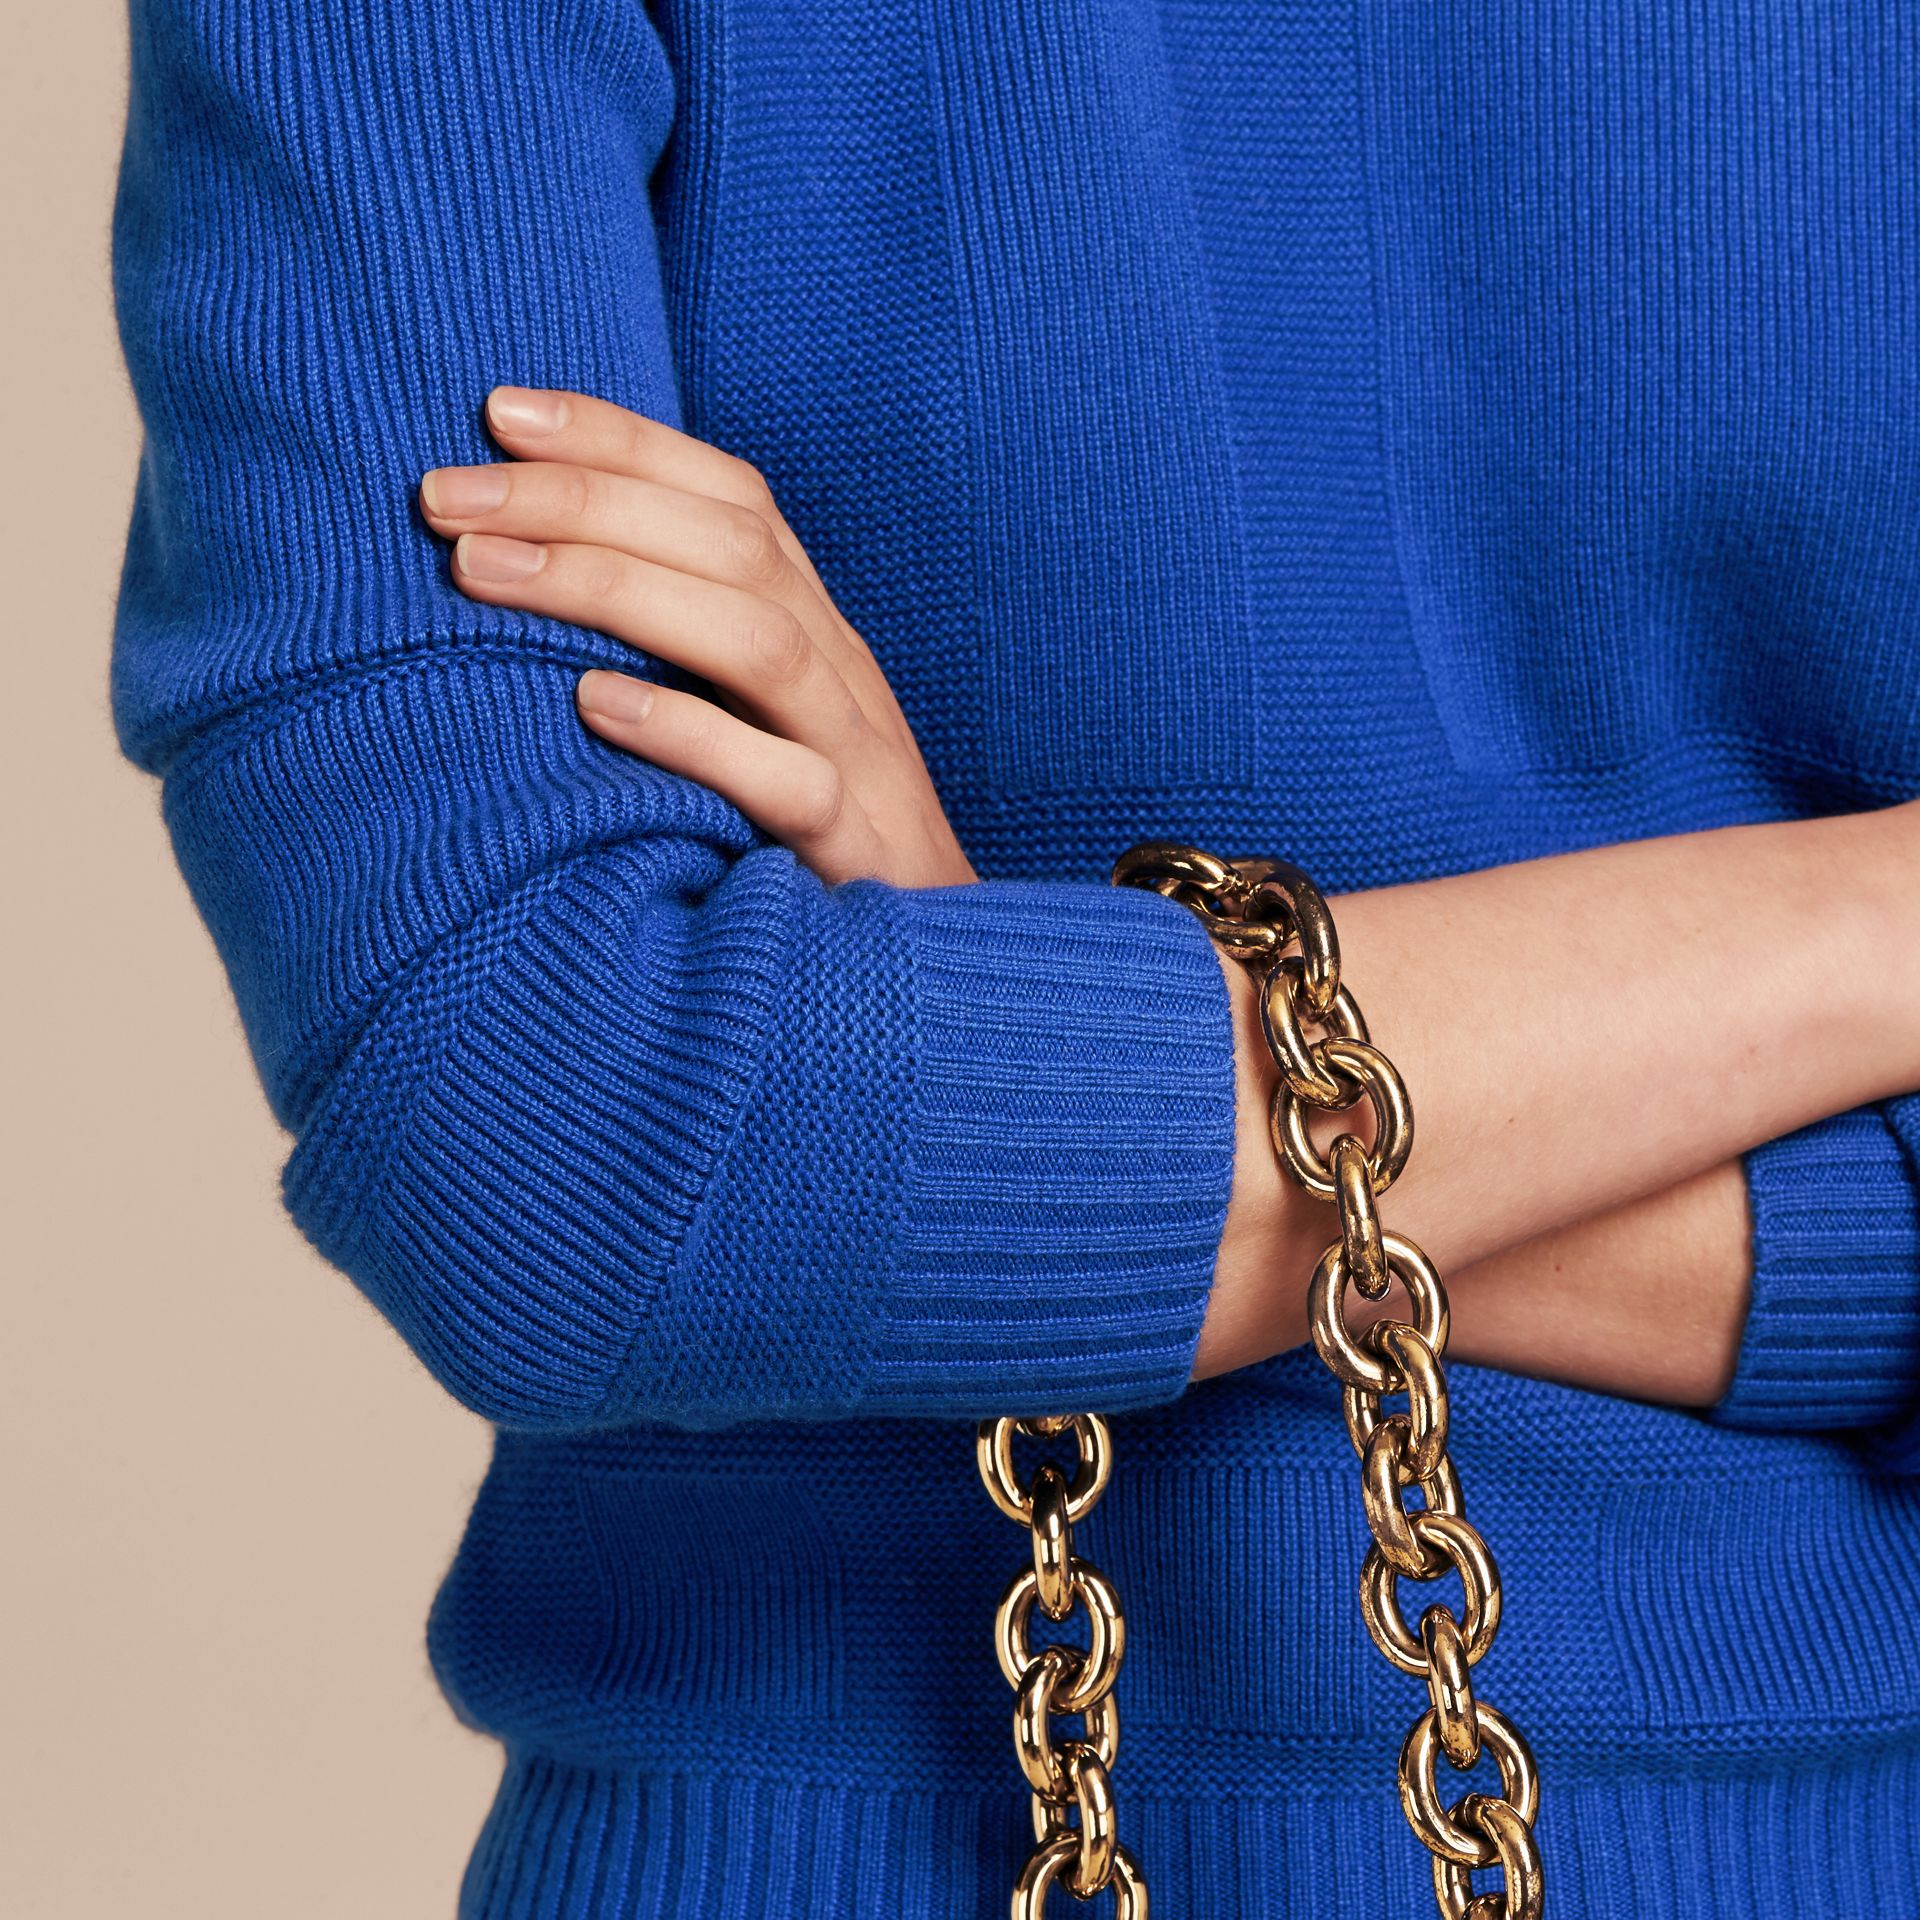 Sapphire blue Check-knit Wool Cashmere Sweater Sapphire Blue - gallery image 5